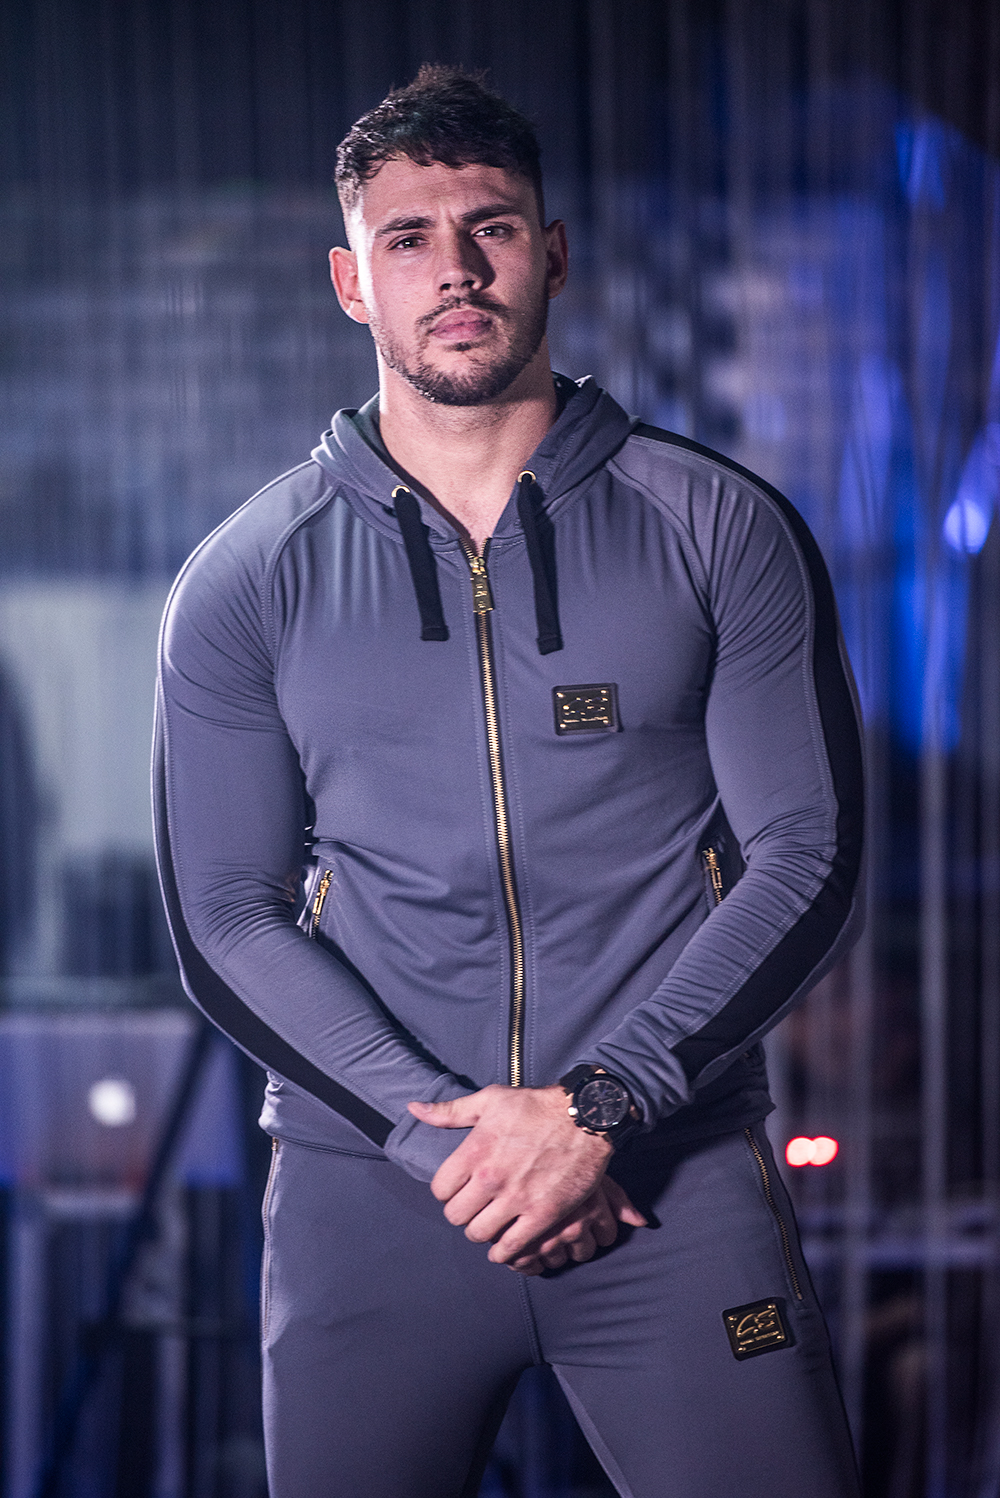 G Salvatore Fashion tracksuits shown at the G Salvatore Fashion Showcase event in Wales